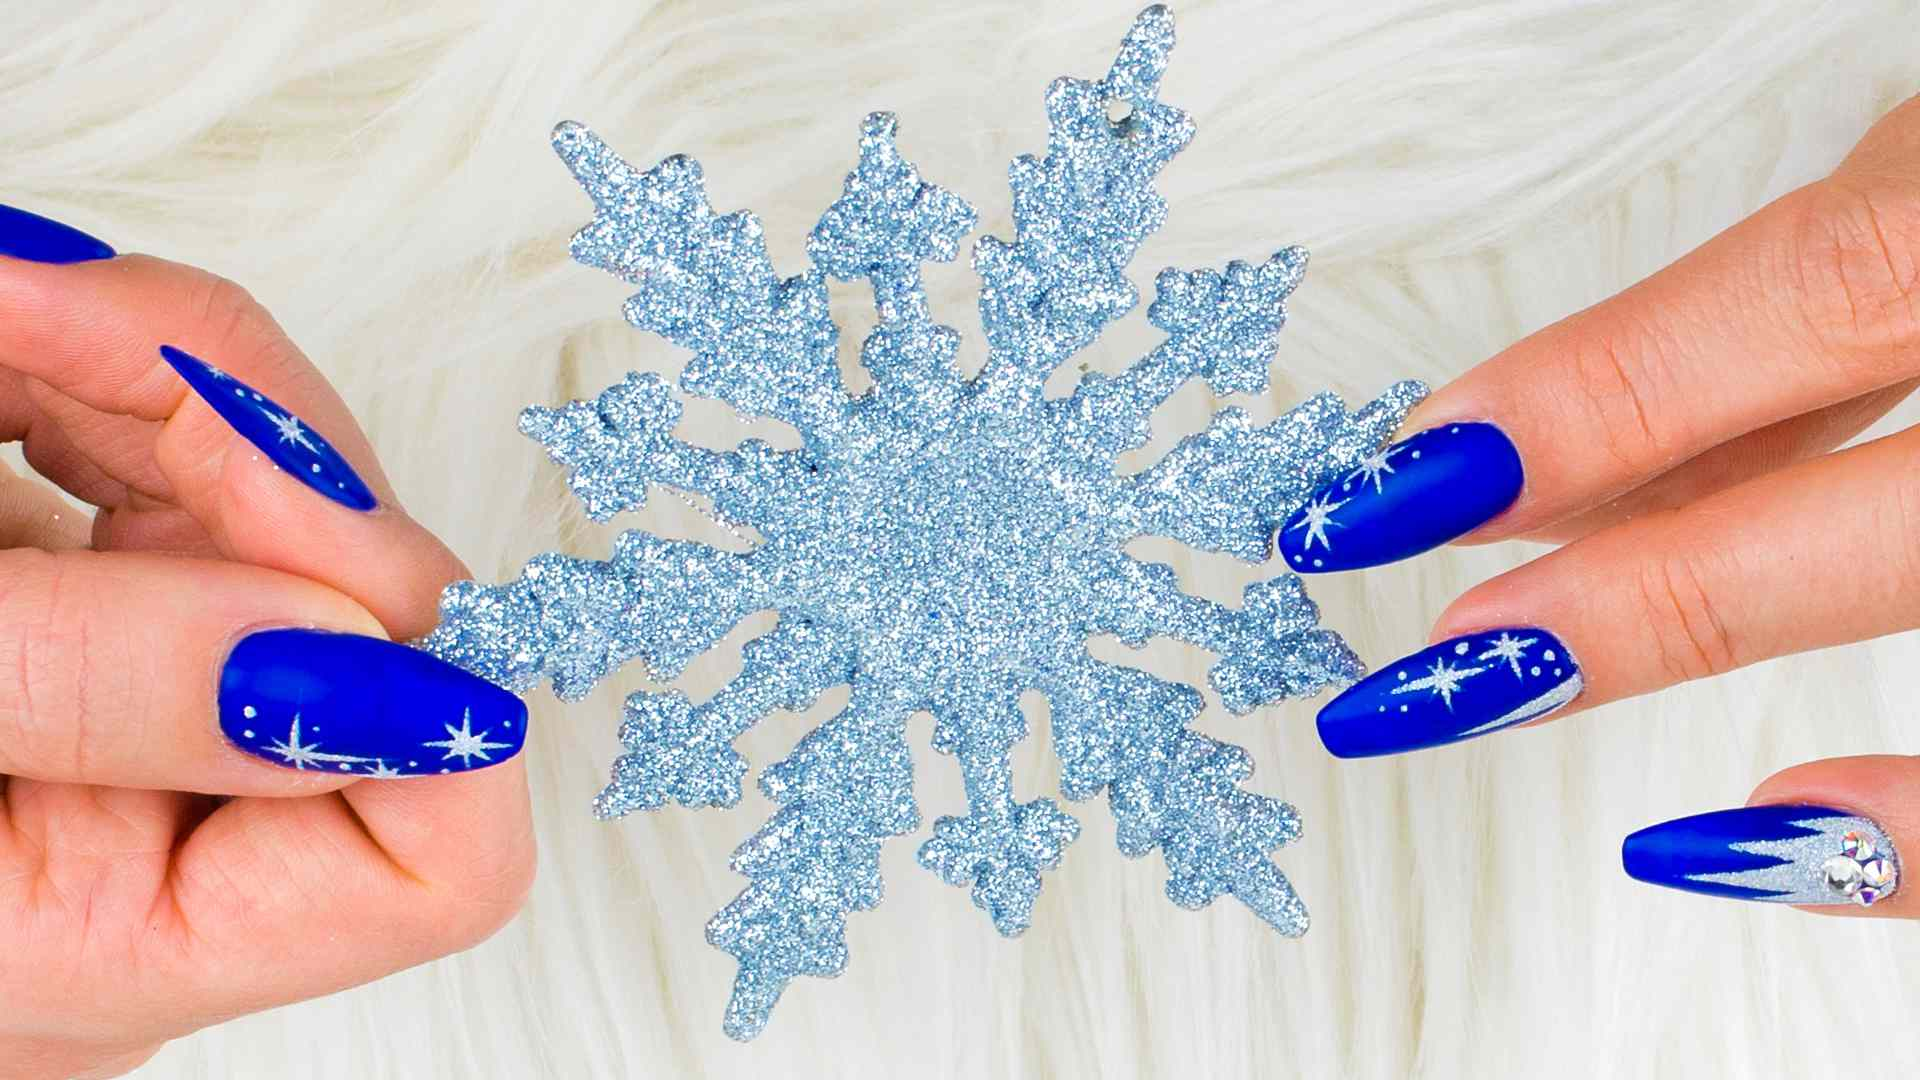 A woman with blue nails holding a snowflake looking like a live-action Elsa from Frozen.